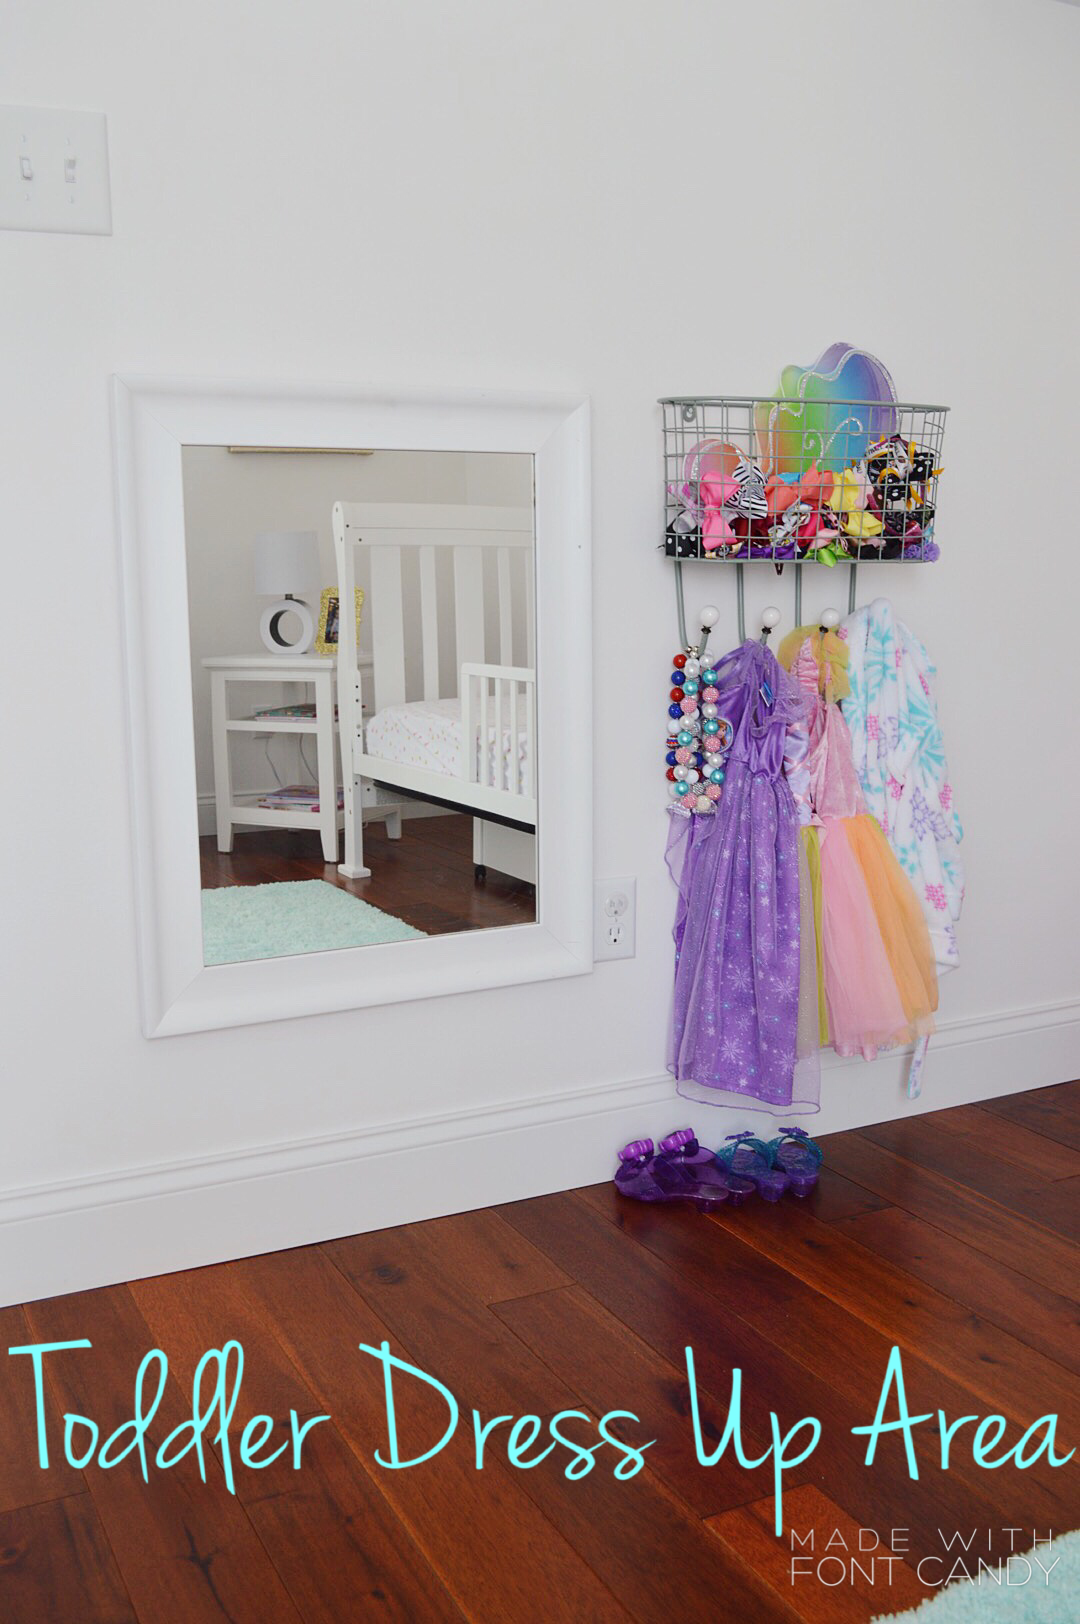 a4a1904785f3 Toddler Princess Dress Up Area!!!! My daughter is OBSESSED!!!!  www.maeryanblog.com